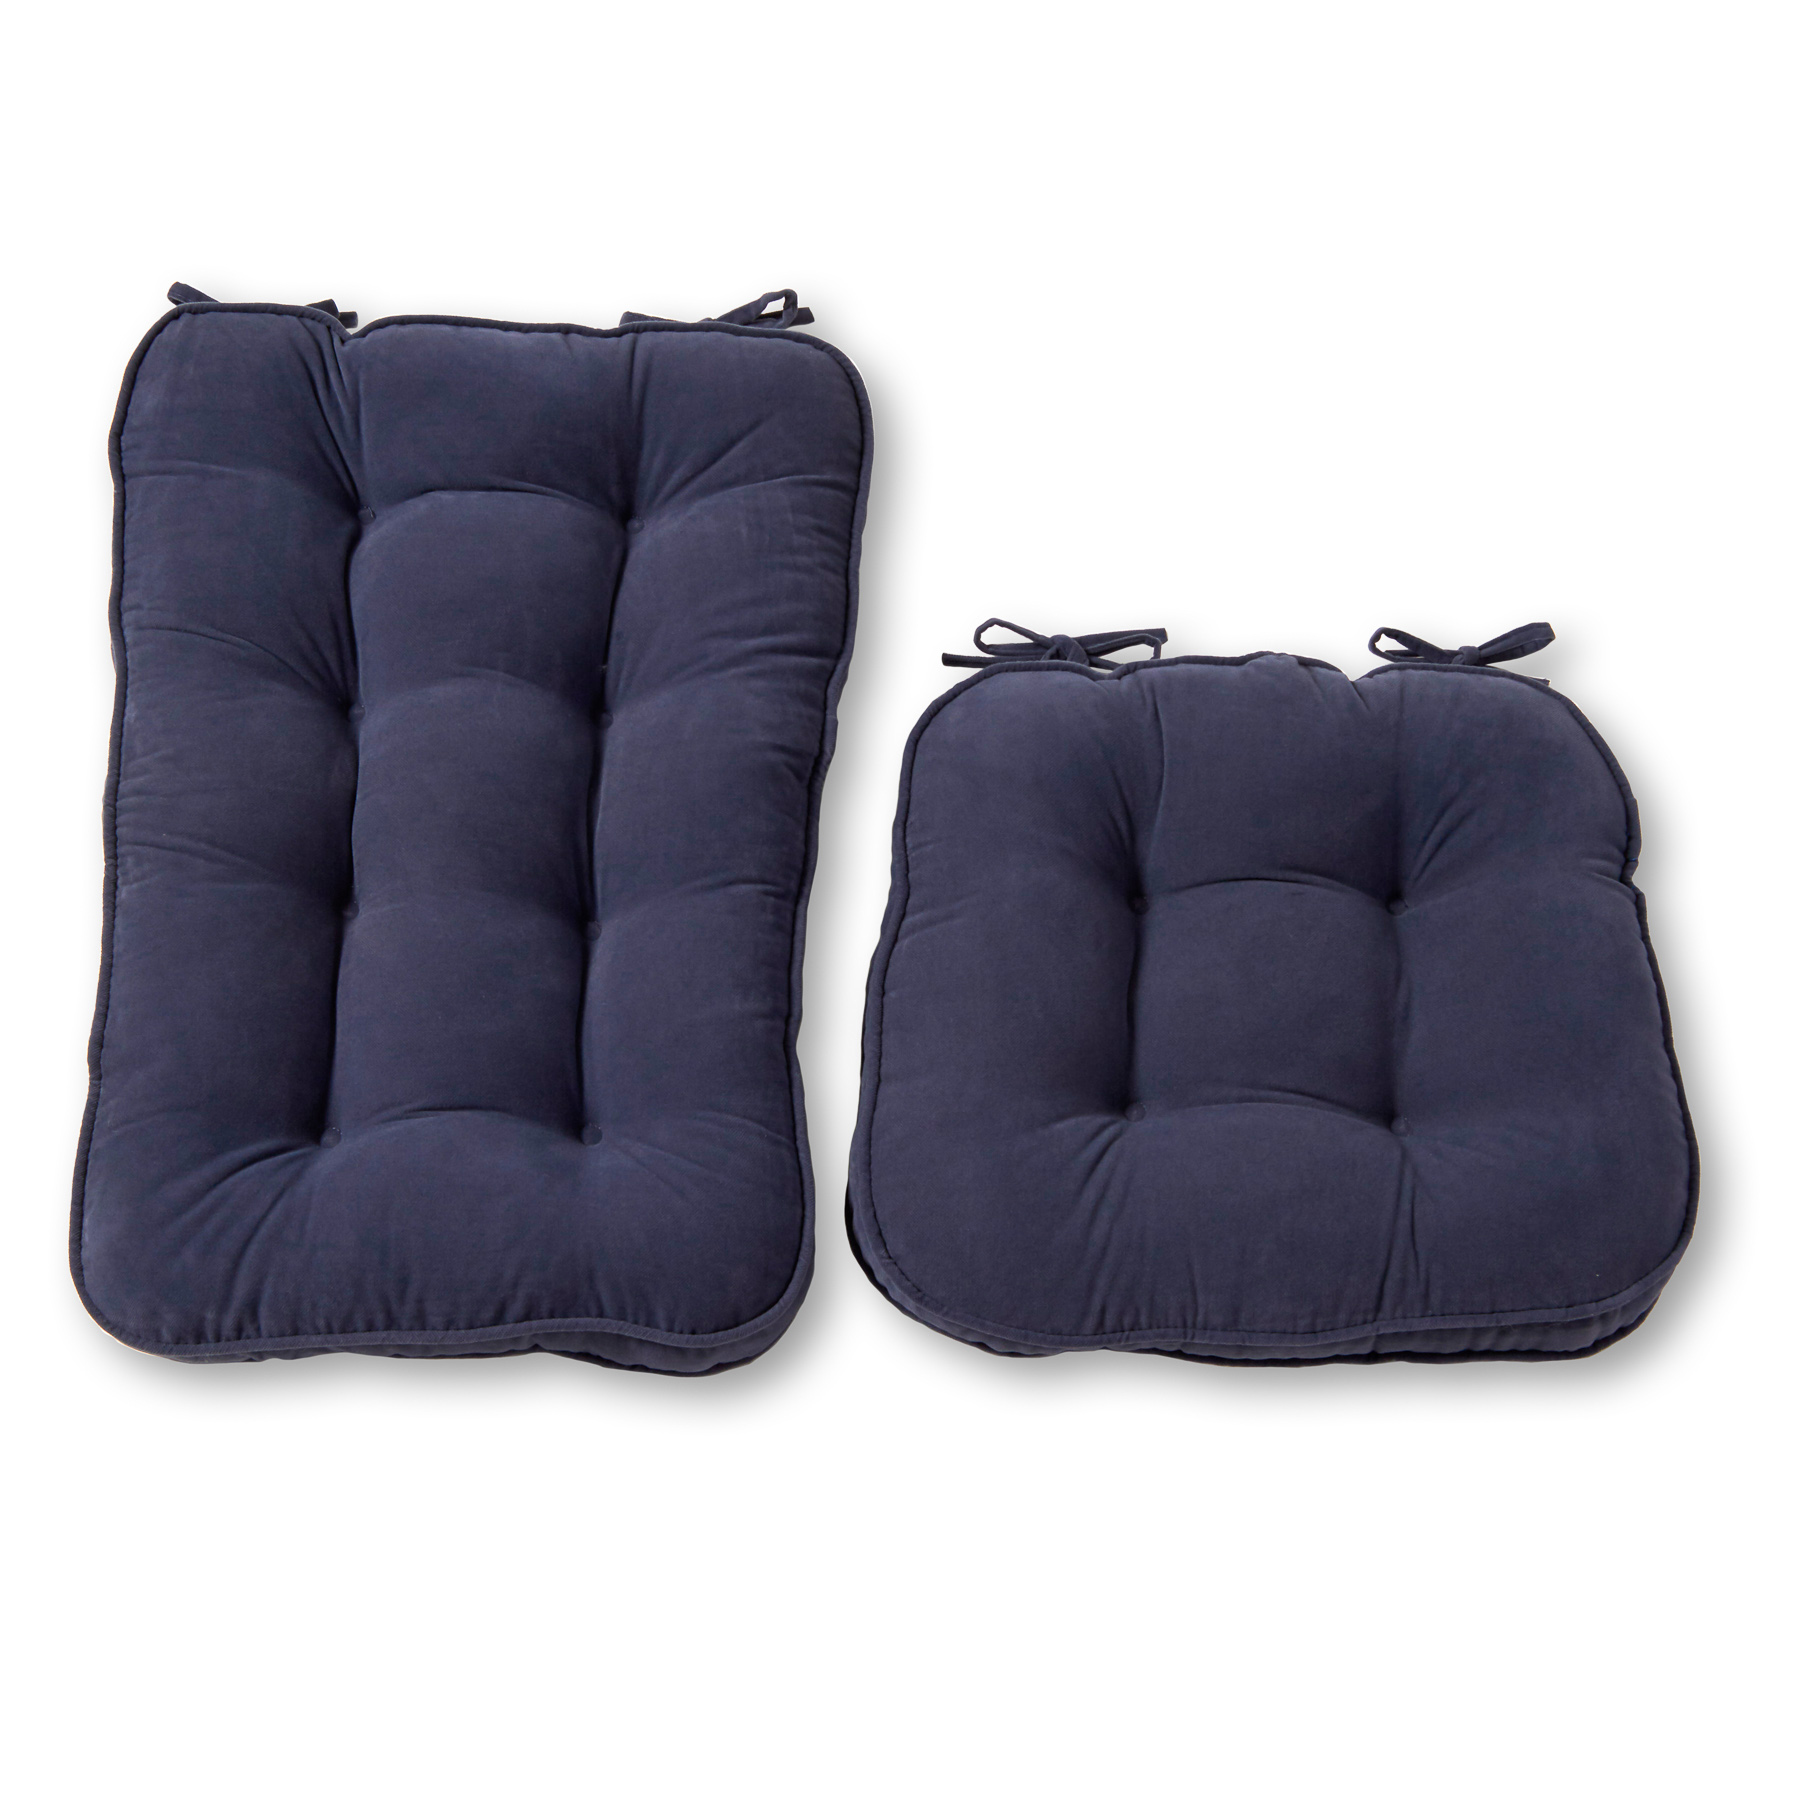 Hyatt Jumbo 2 Piece Rocking Chair Cushion Set Walmart Com Walmart Com